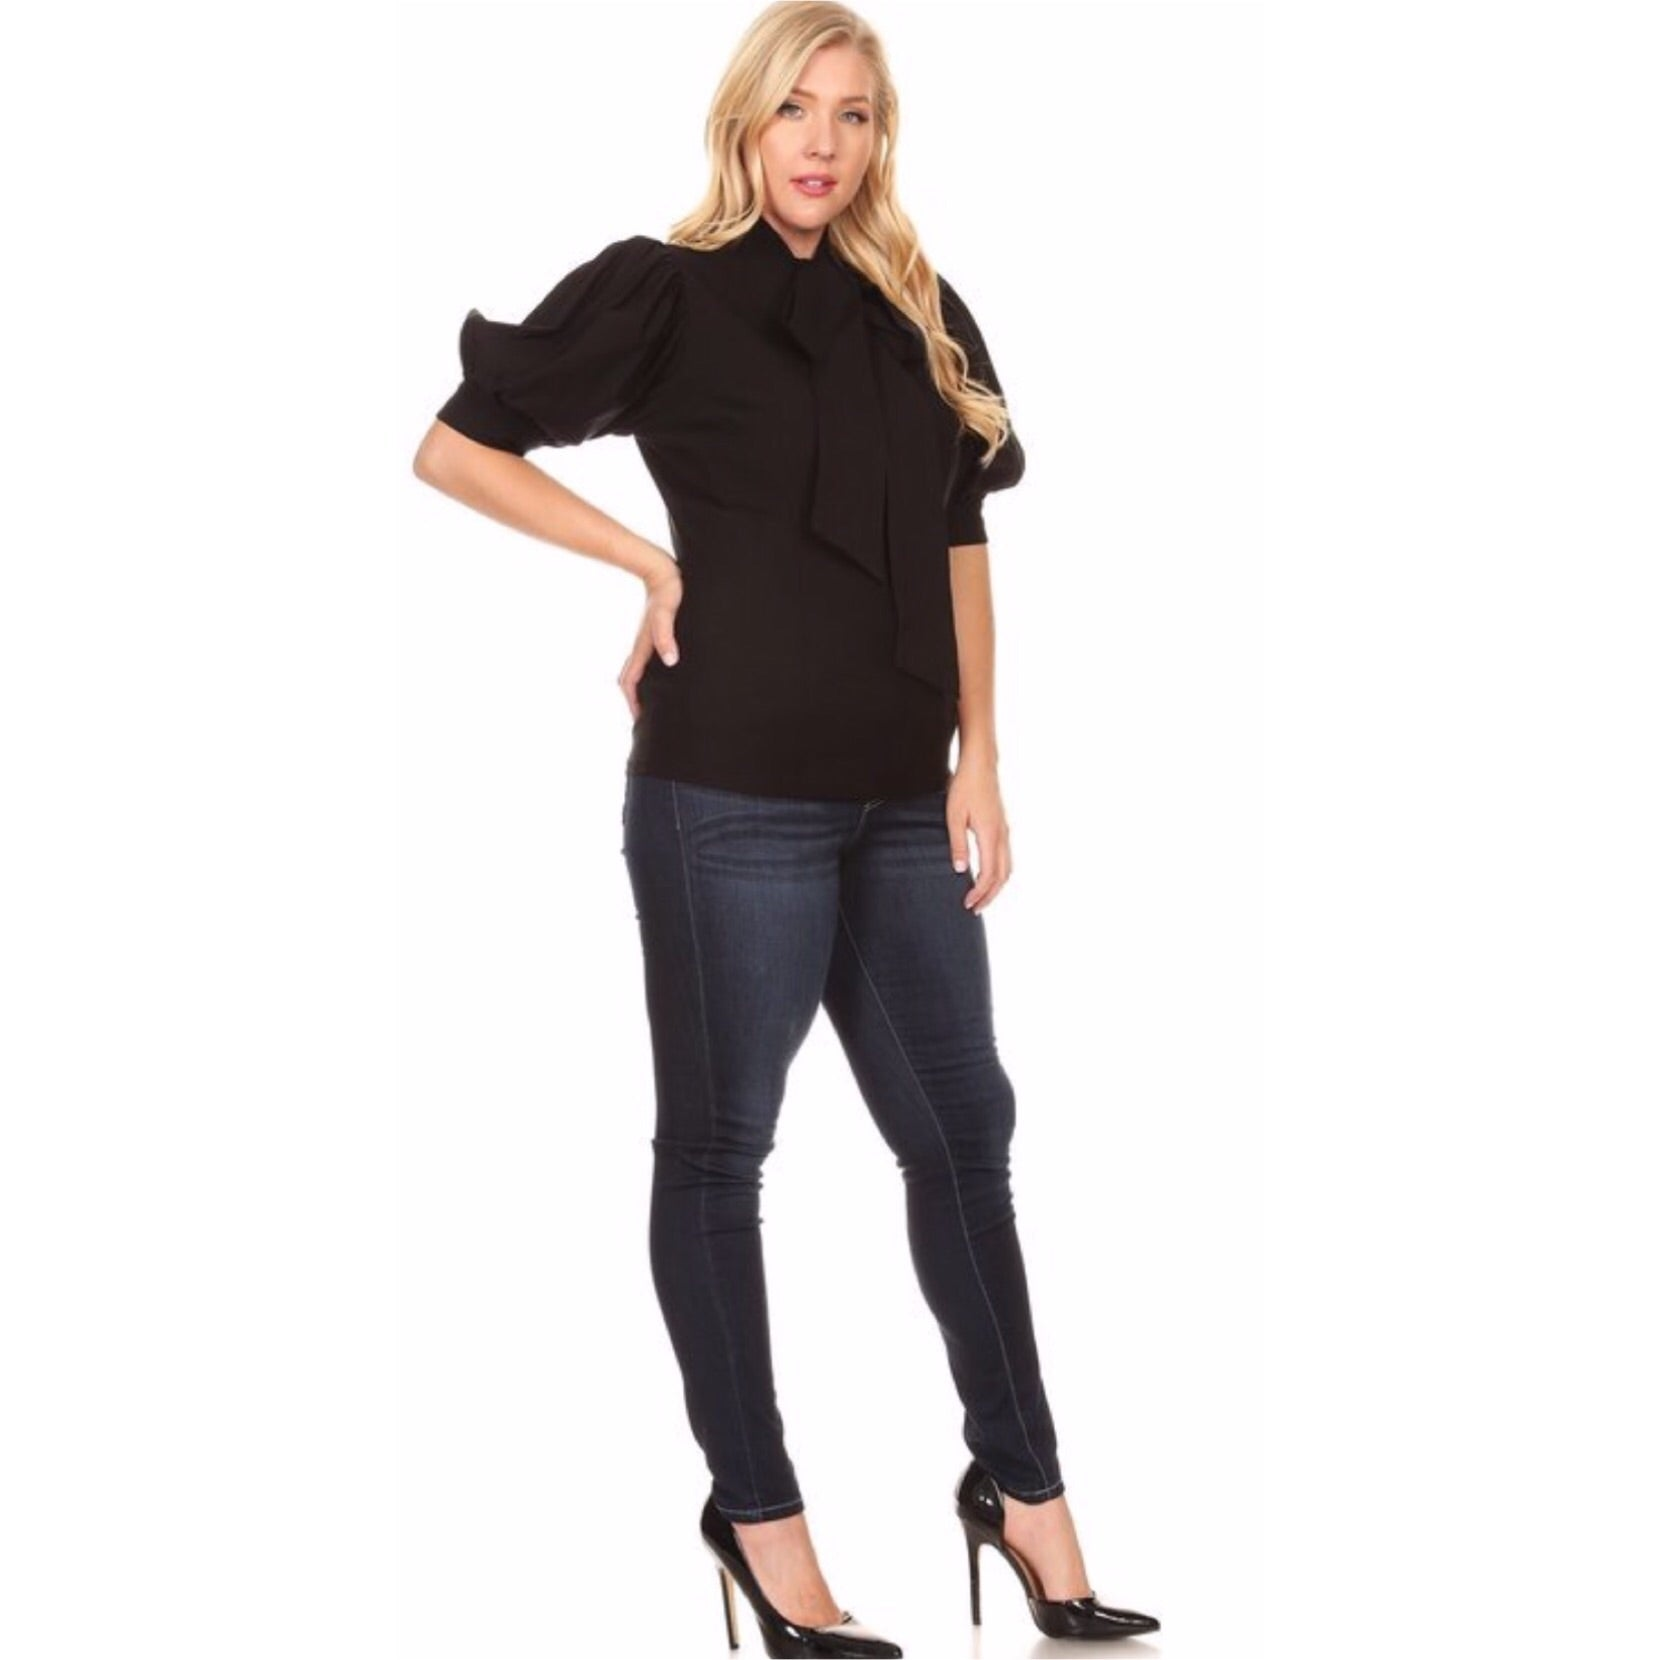 Basic Black Blouse